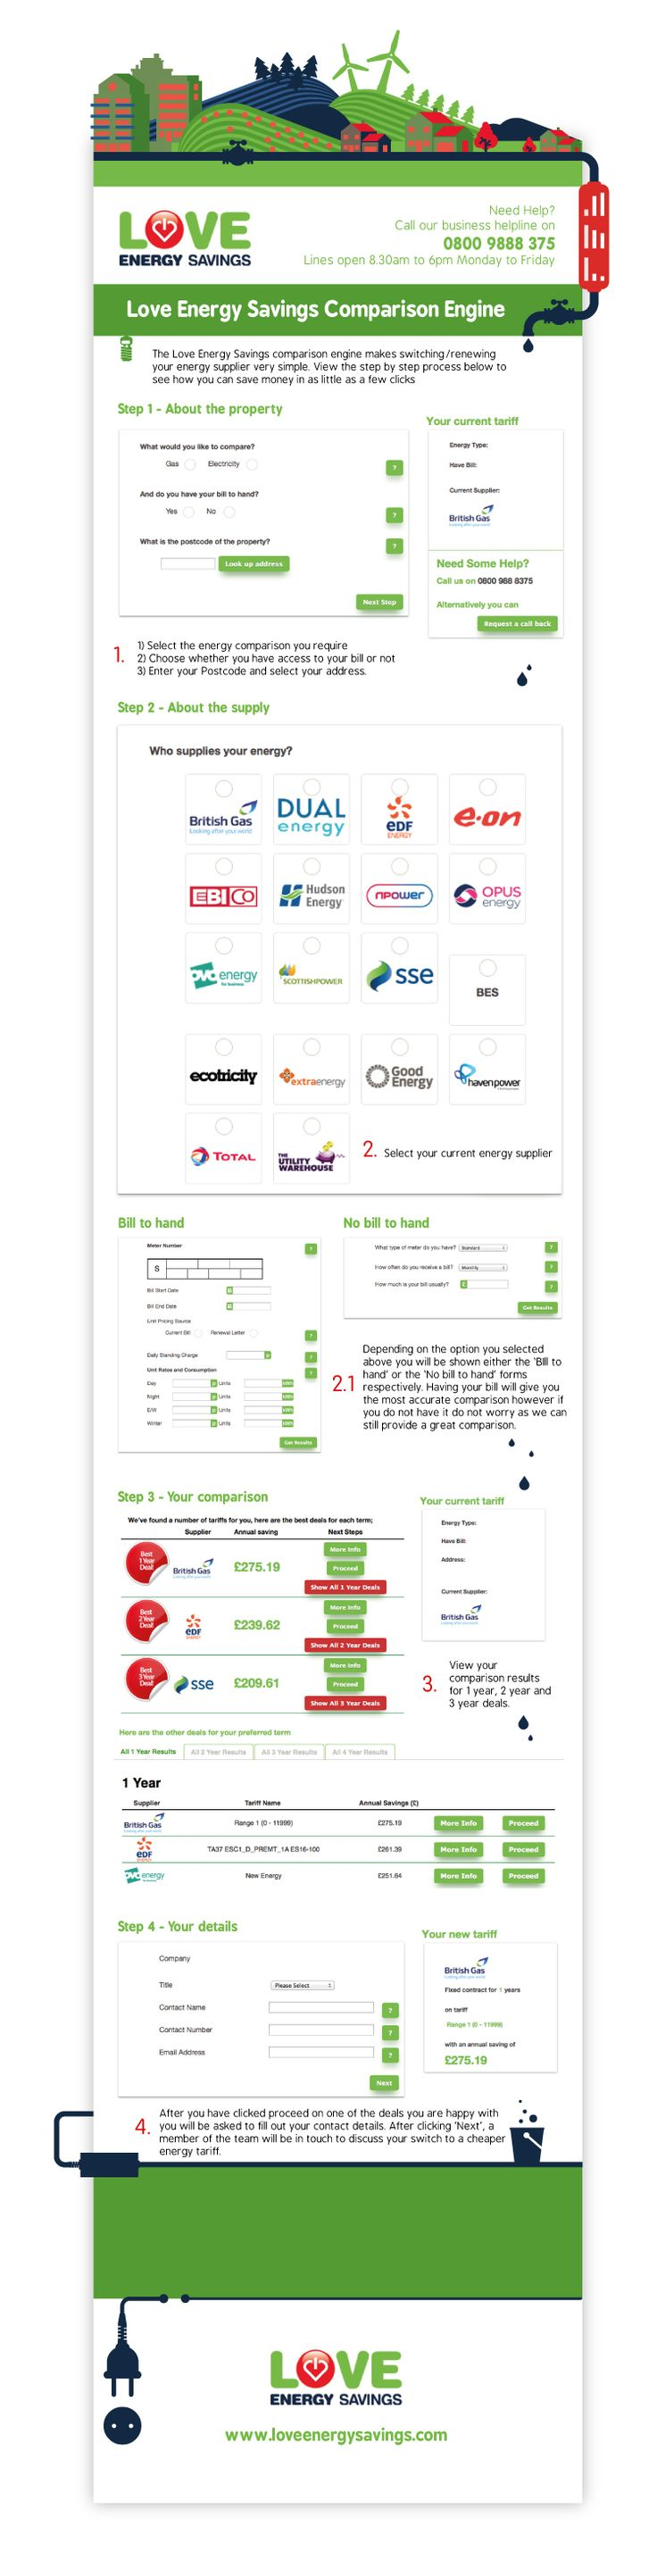 Have You Seen Our Great New Infographic? See Just How Easy It Is to Compare Business Energy Prices!